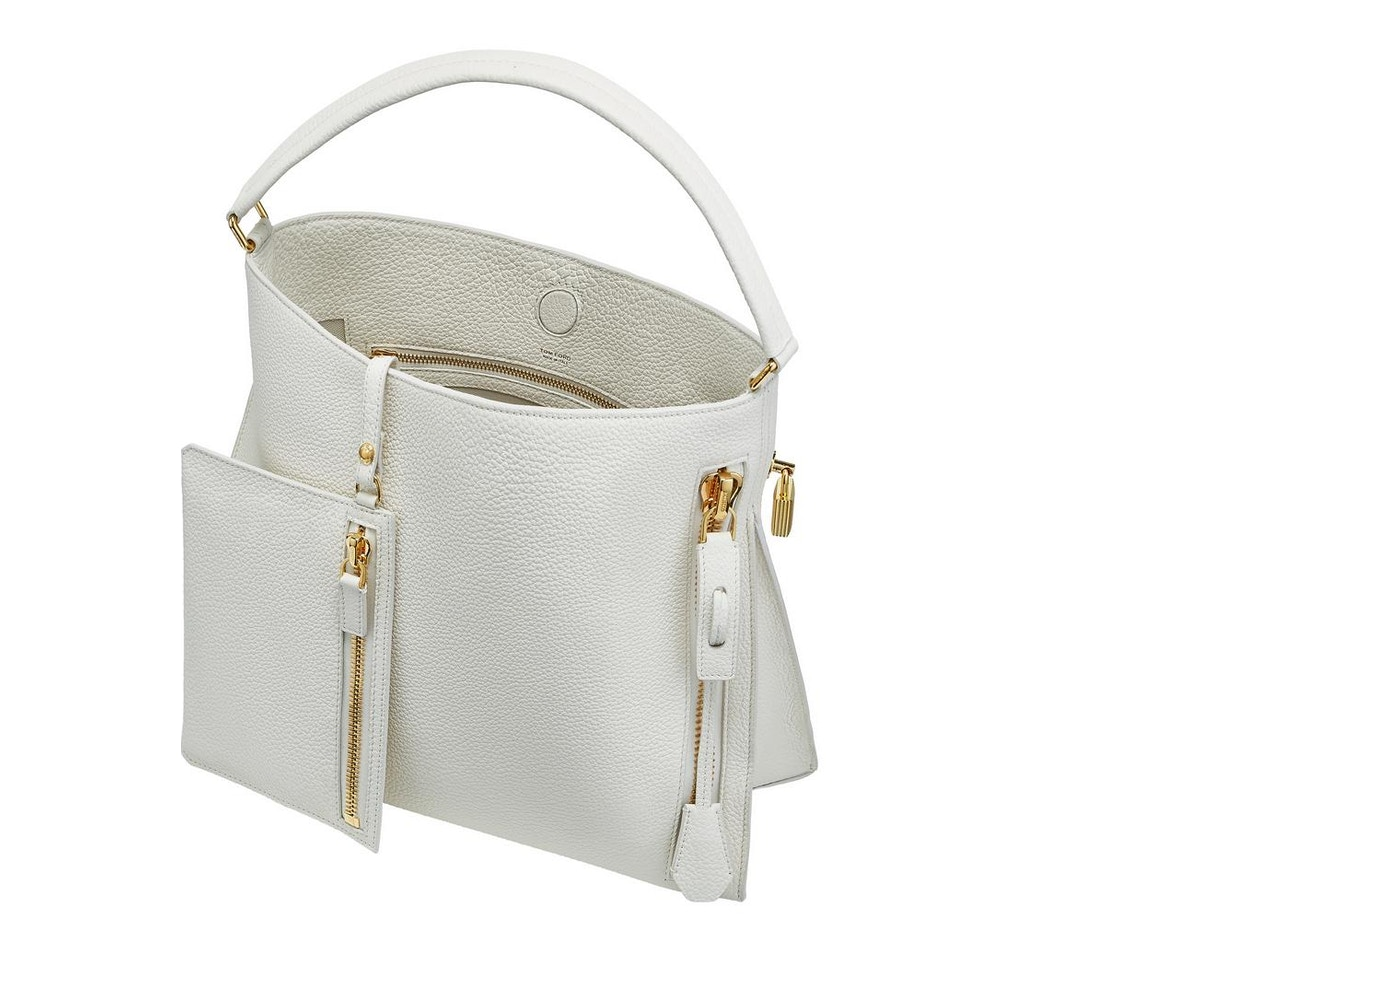 4f507a4c1 Tom Ford Alix Hobo Bag (With Pouch) Small Chalk. (With Pouch) Small Chalk